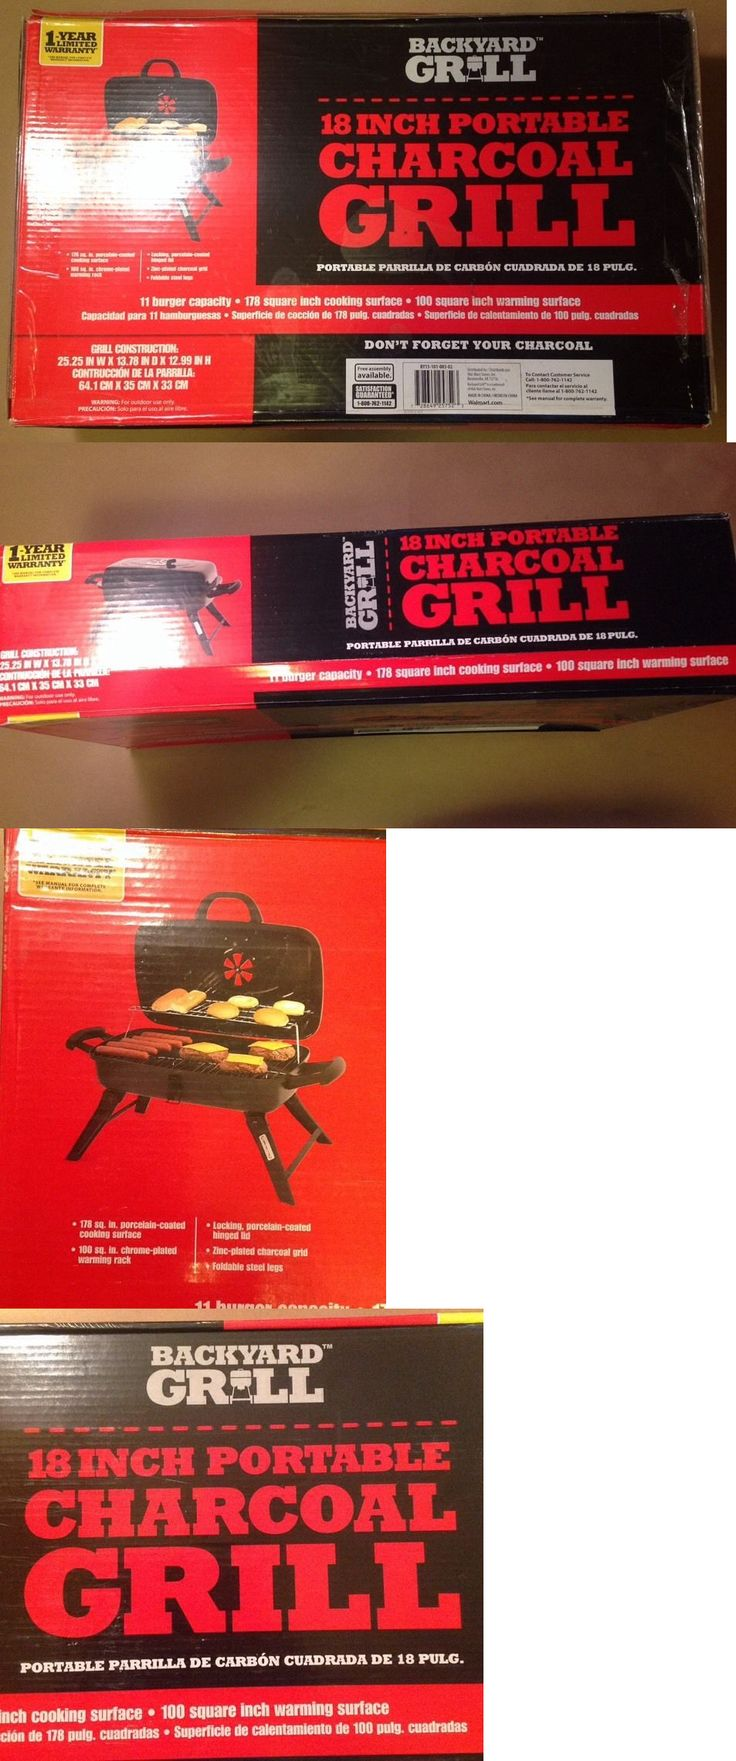 Other Outdoor Cooking and Eating 159926: Backyard Grill 18 Inch Portable Charcoal Grill 11 Burgers By15-101-003-02 -> BUY IT NOW ONLY: $35.98 on eBay!